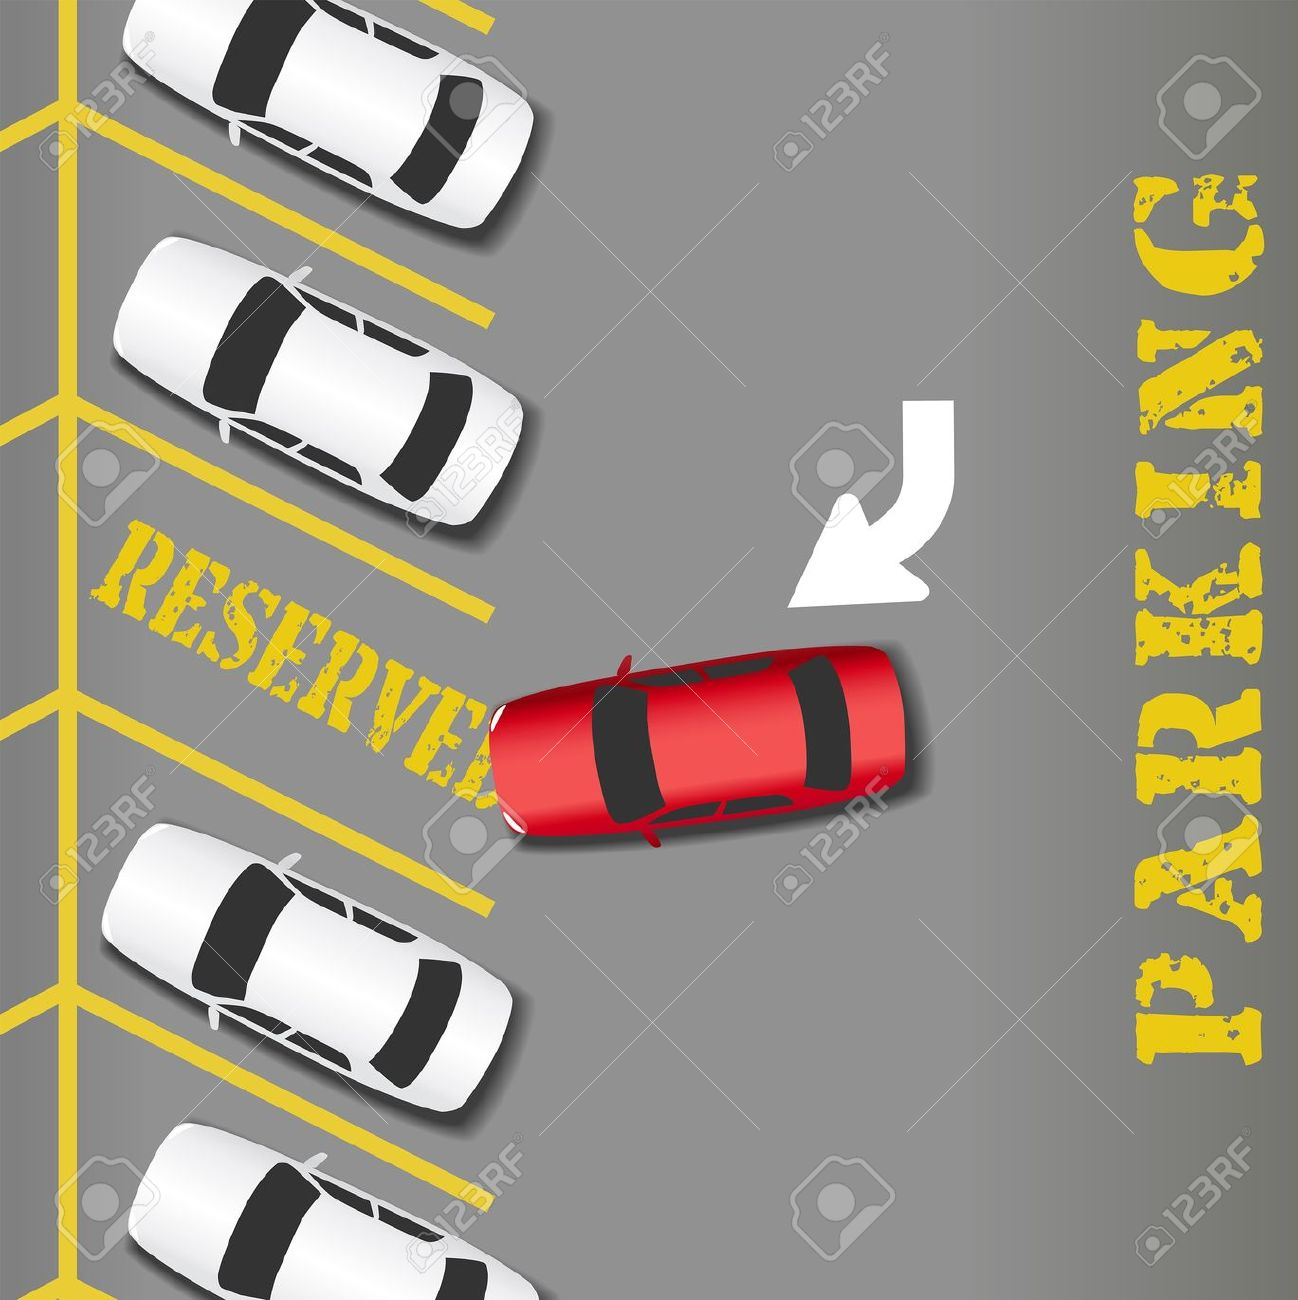 Empty Parking Lot Clip Art U2013 Clipart-Empty Parking Lot Clip Art u2013 Clipart Free Download-2